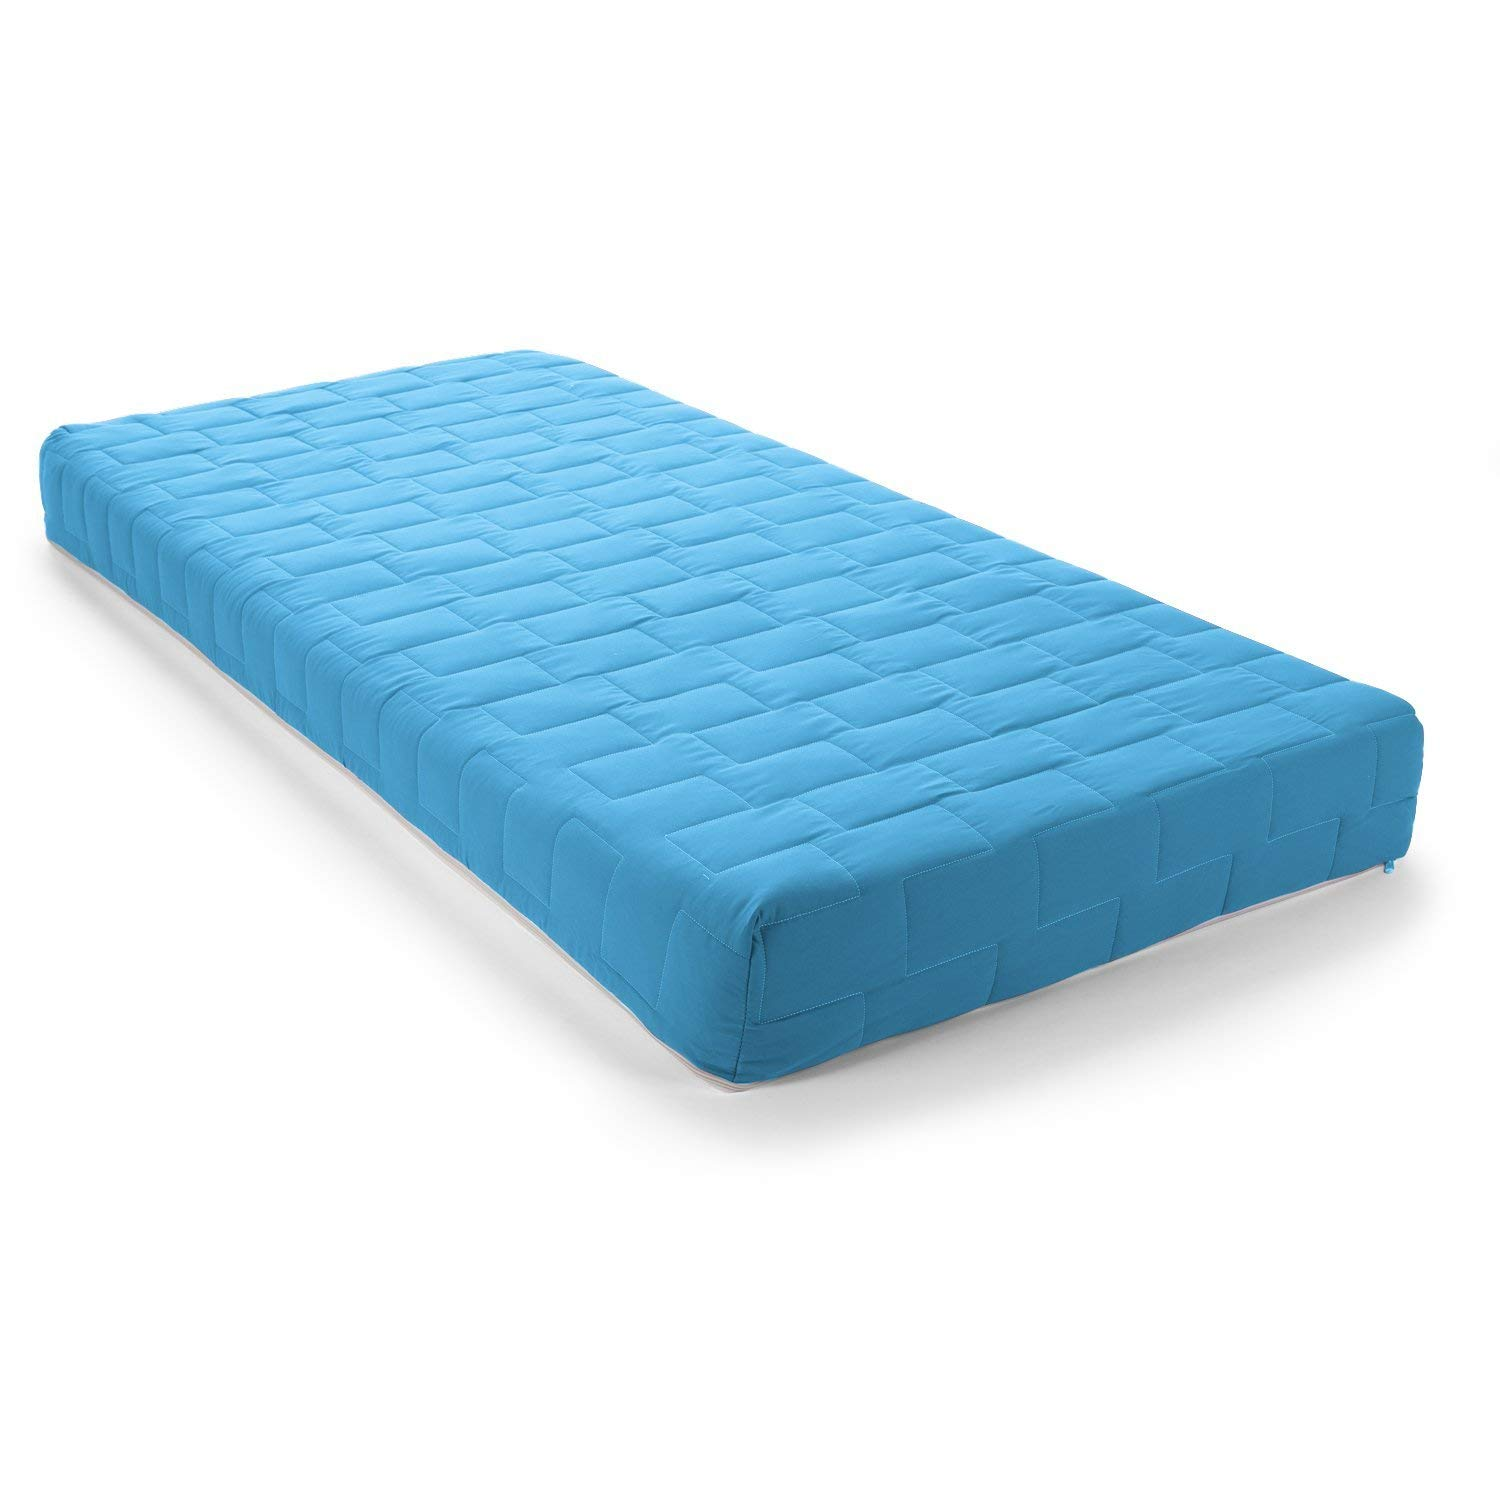 Visco Therapy Jazz Coil Spring Rolled Mattress Cover - Single, Light Blue